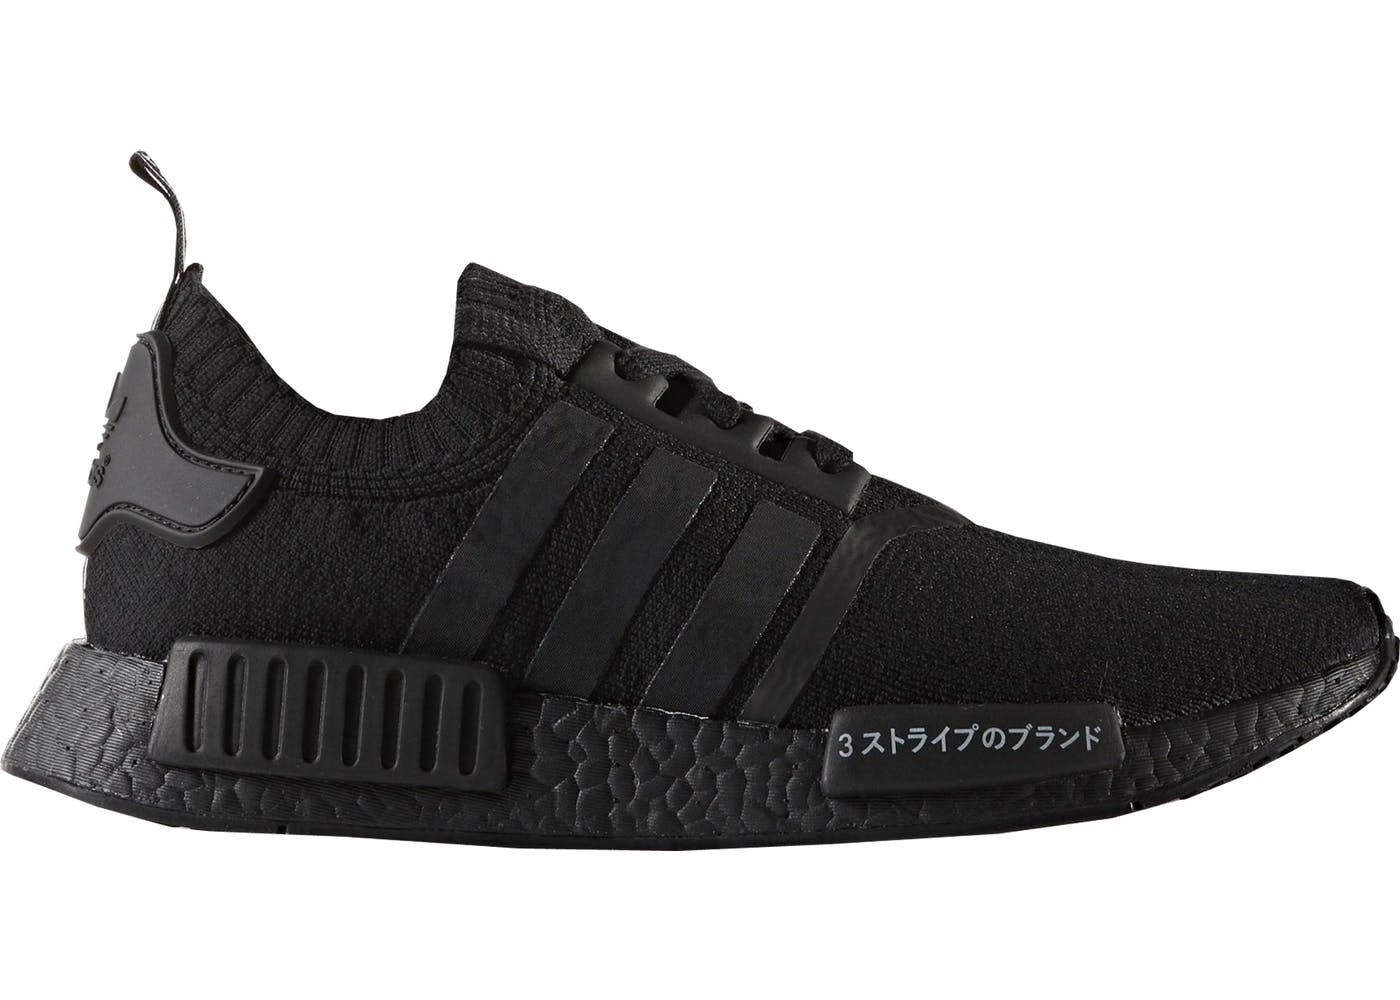 OG Colors Return on adidas NMD R1 's Tricolor Pack Philip Vaughan